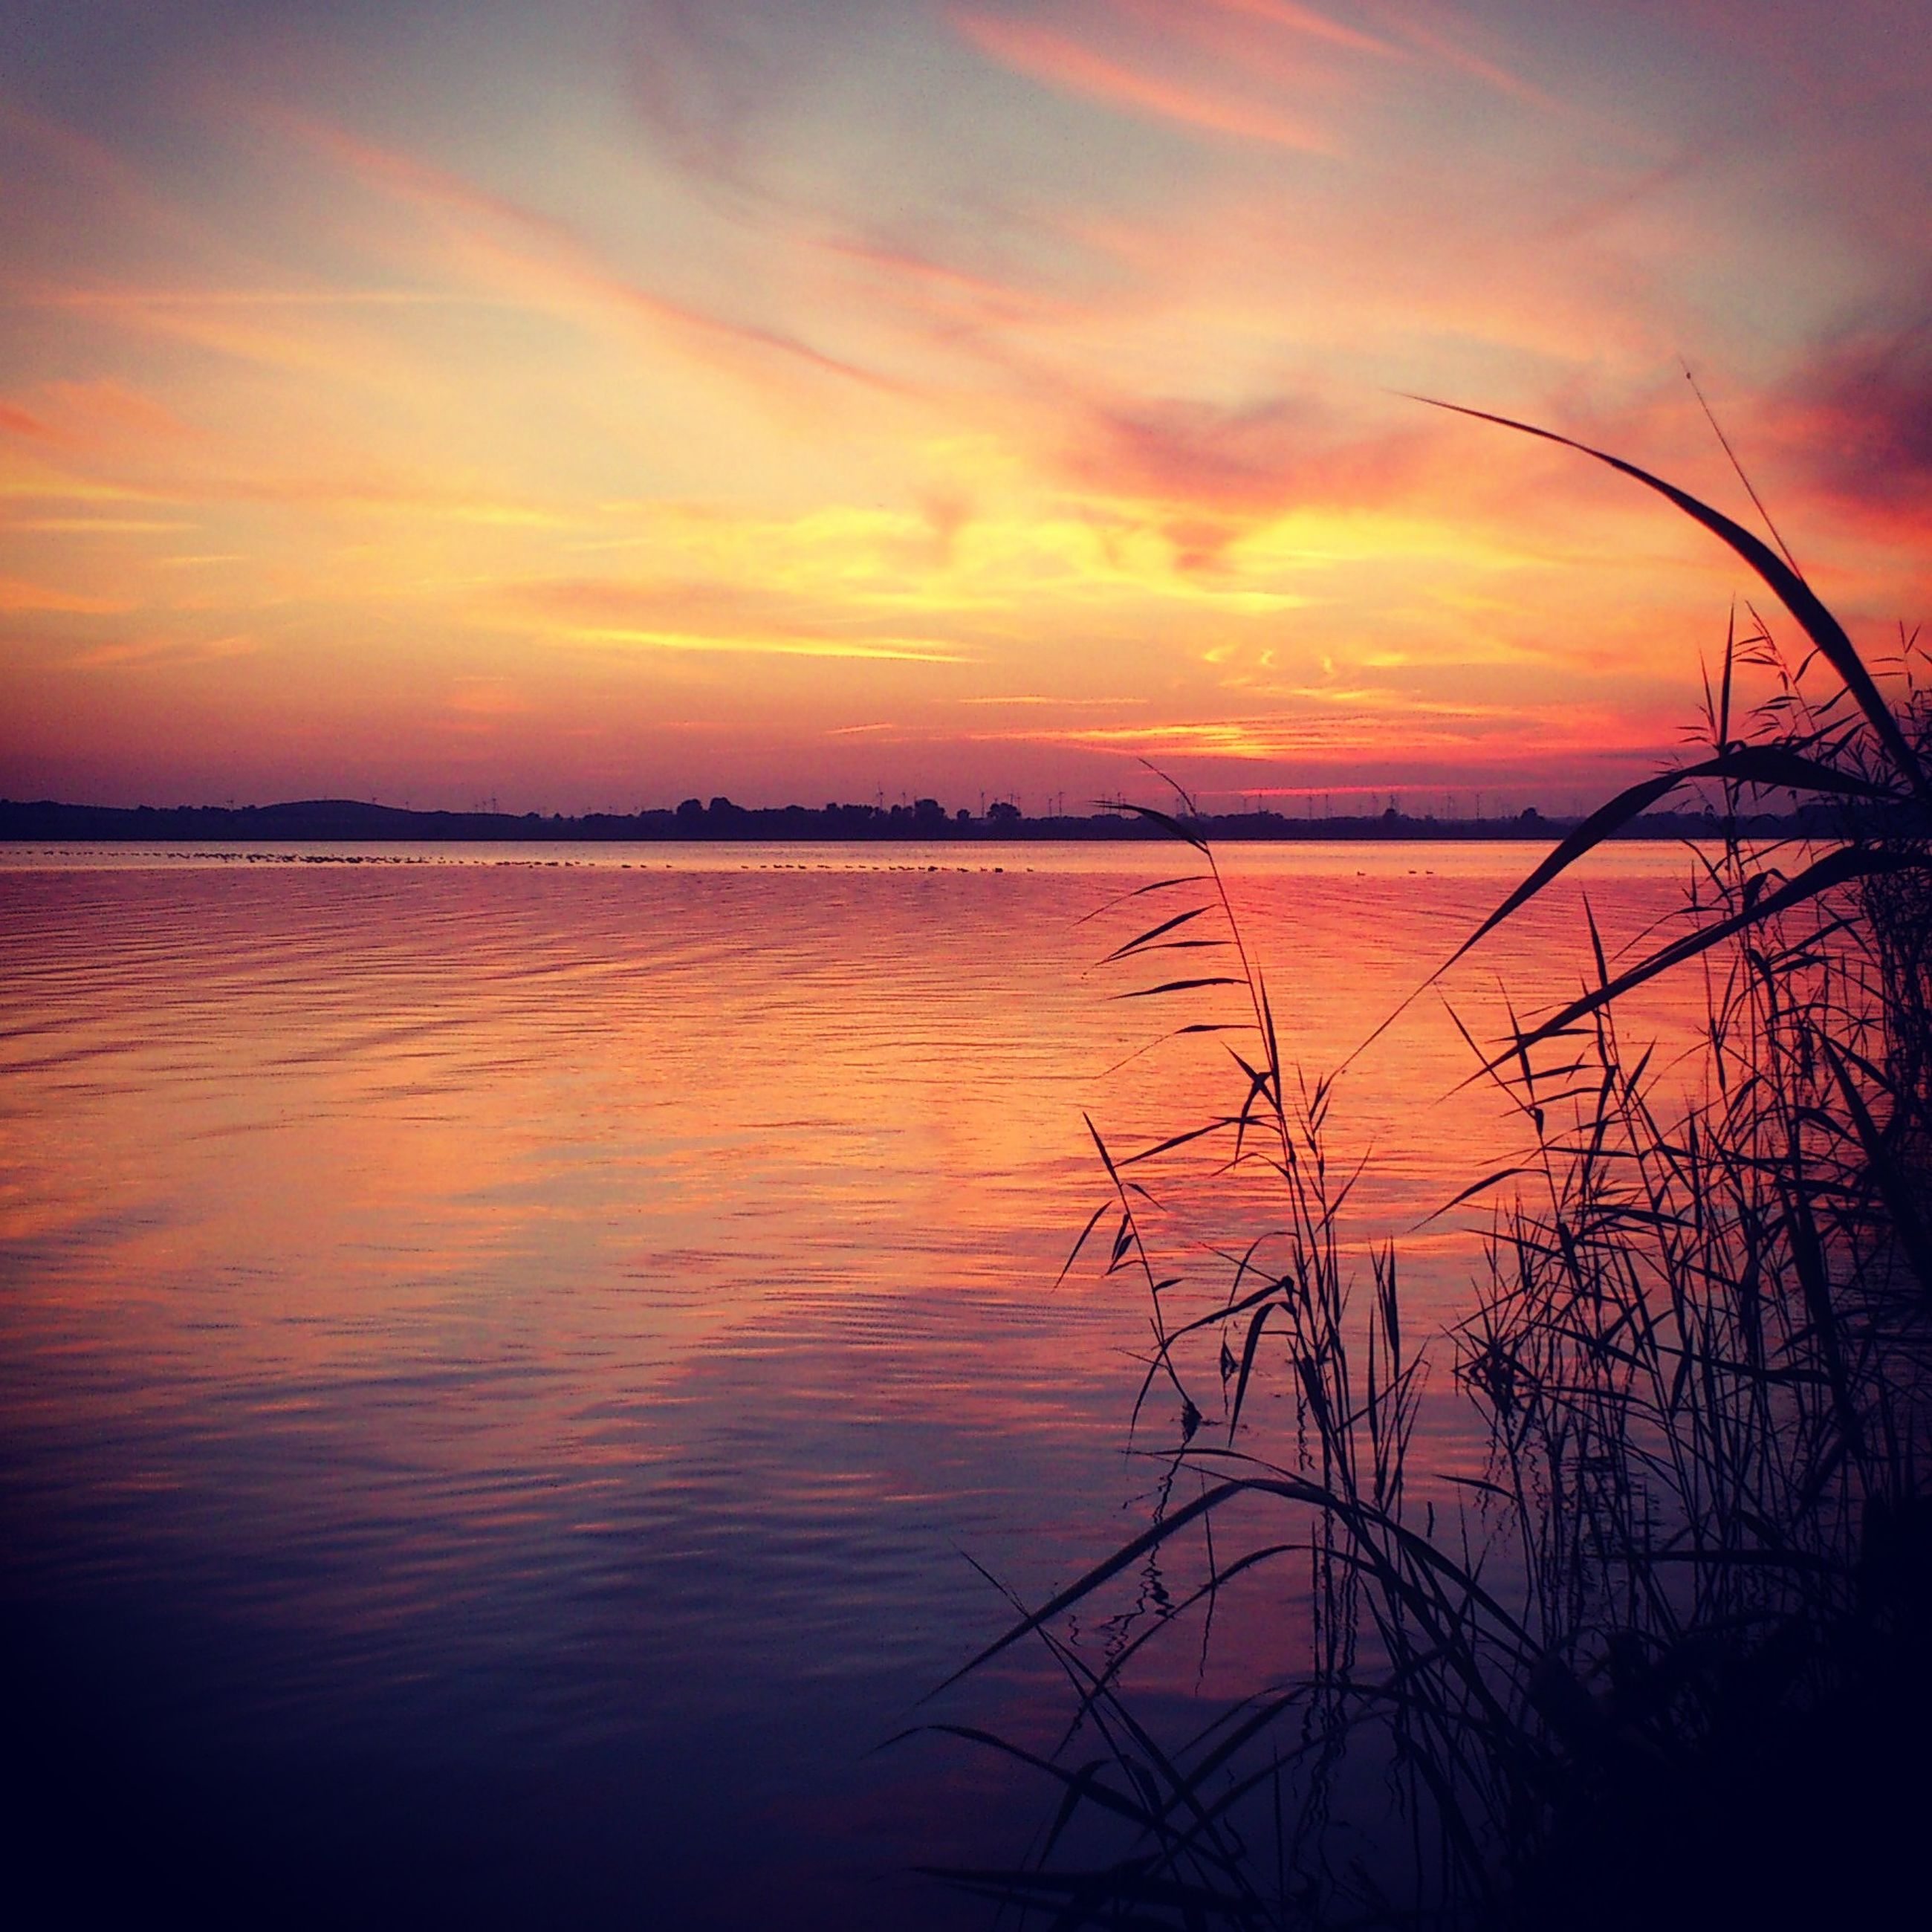 sunset, water, tranquil scene, orange color, scenics, tranquility, silhouette, sky, beauty in nature, reflection, idyllic, lake, nature, cloud - sky, dramatic sky, majestic, cloud, sun, outdoors, moody sky